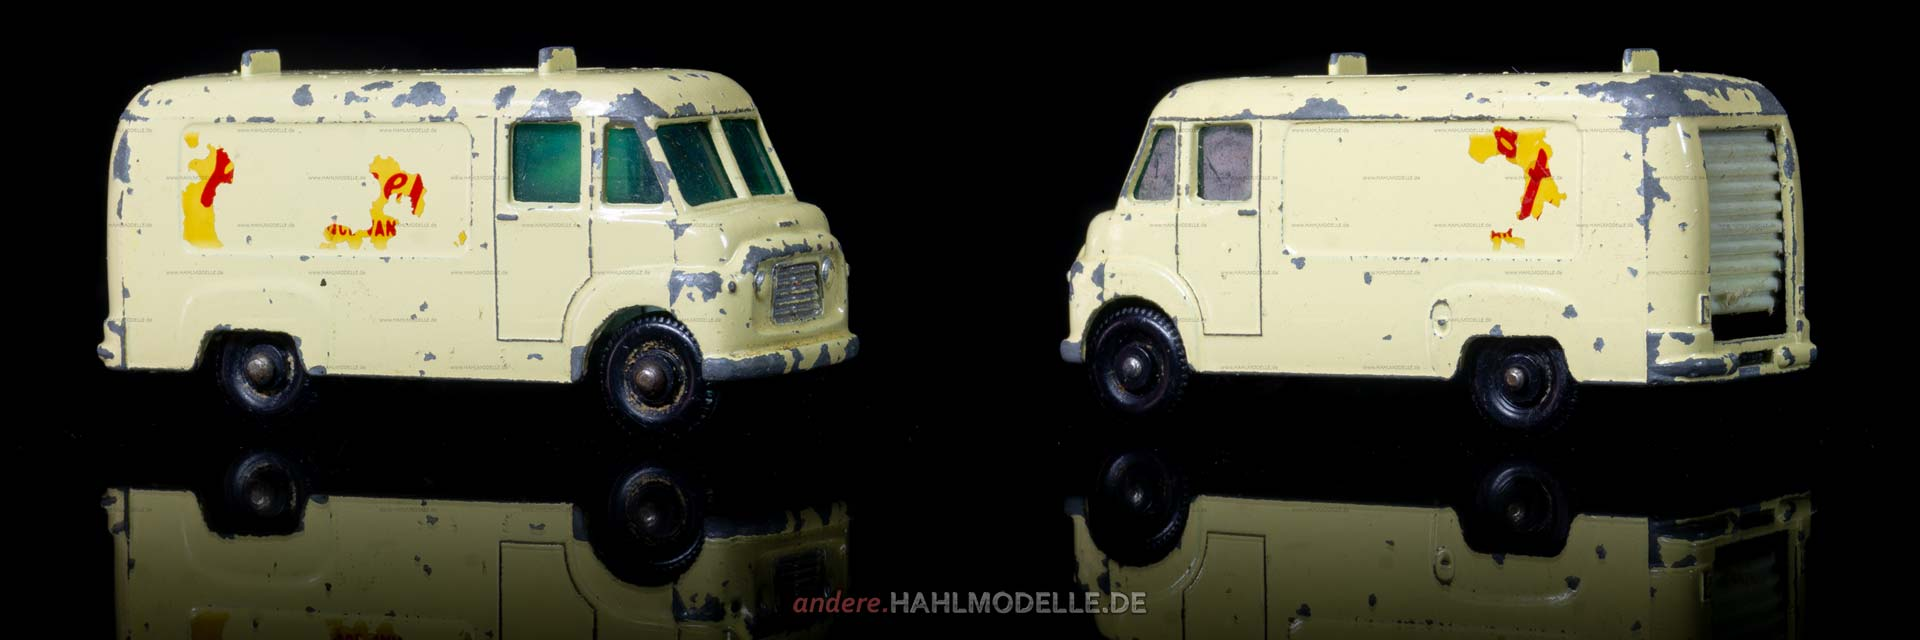 "Commer BF | Kastenwagen | Lesney Products & Co. Ltd. | 1:64 | Matchbox ""T.V. Service Van"" 